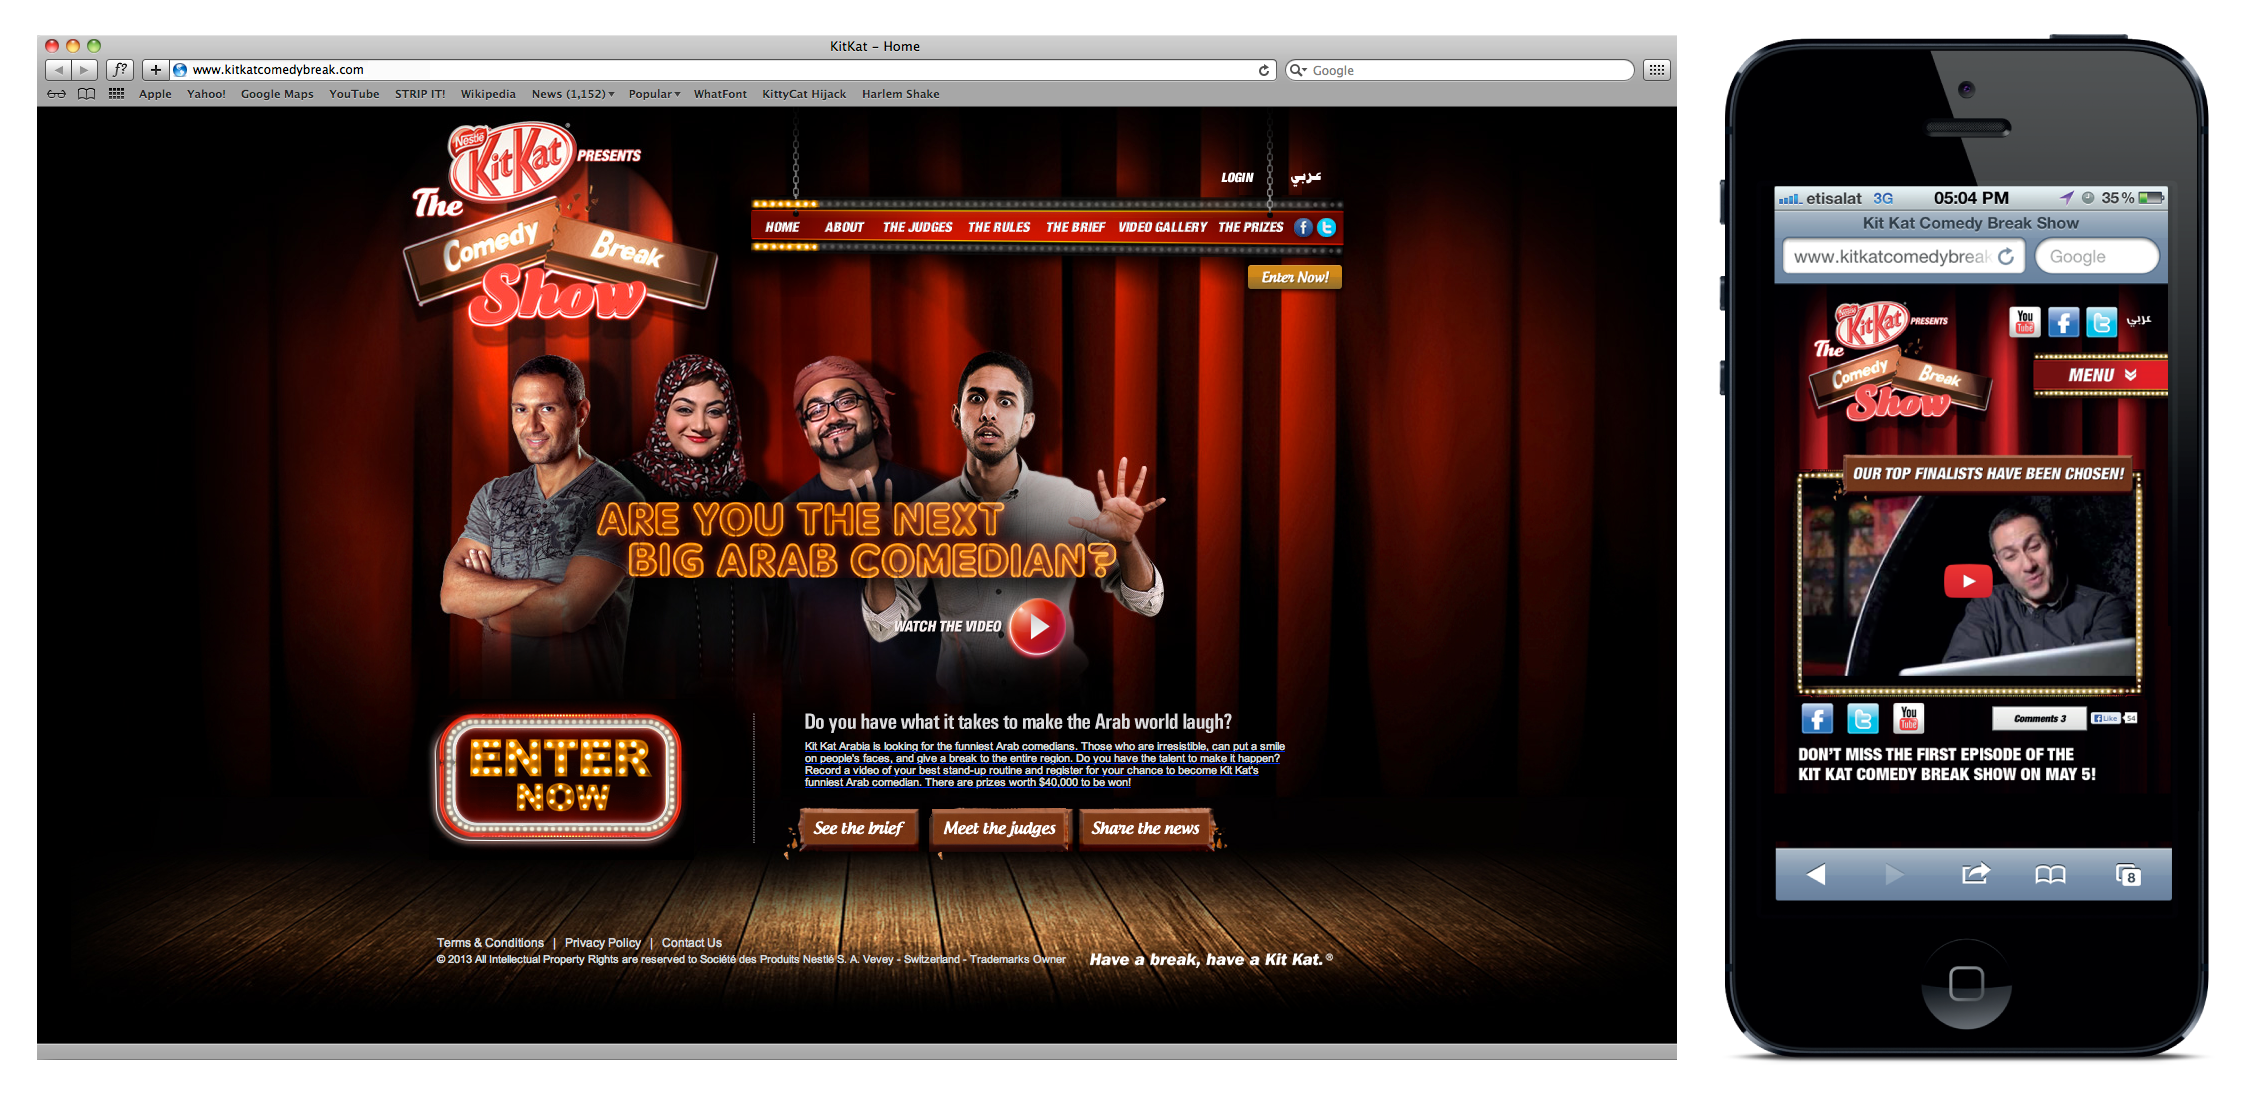 The KIT KAT Comedy Break Show website was designed to be responsive on multiple devices.